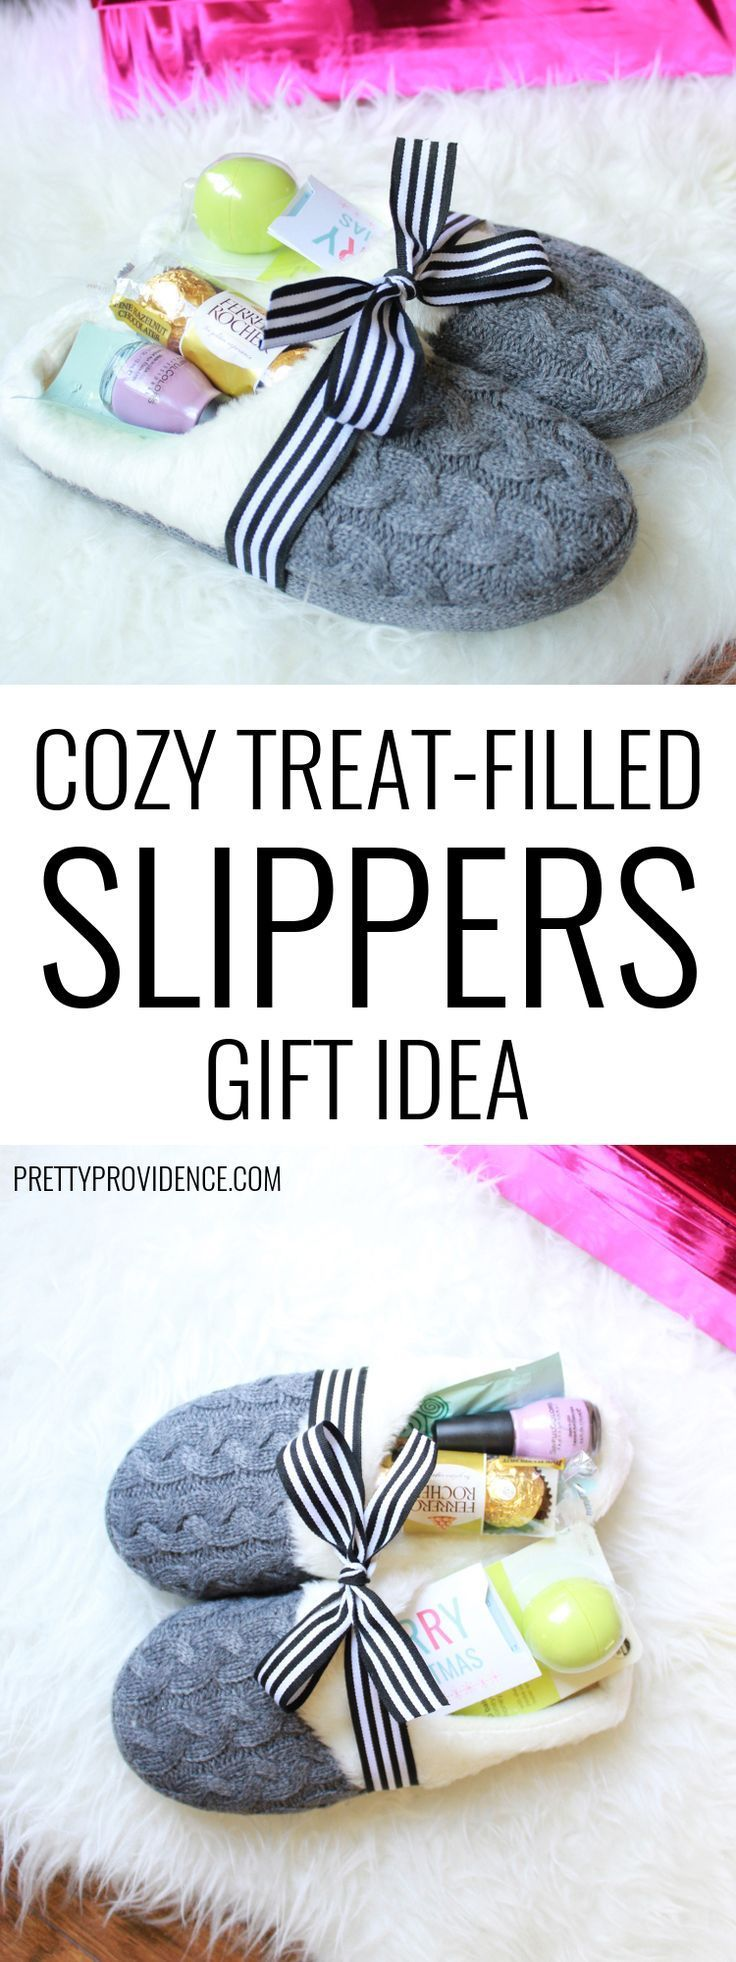 Slippers make a great gift and they are even better when filled with little trea...